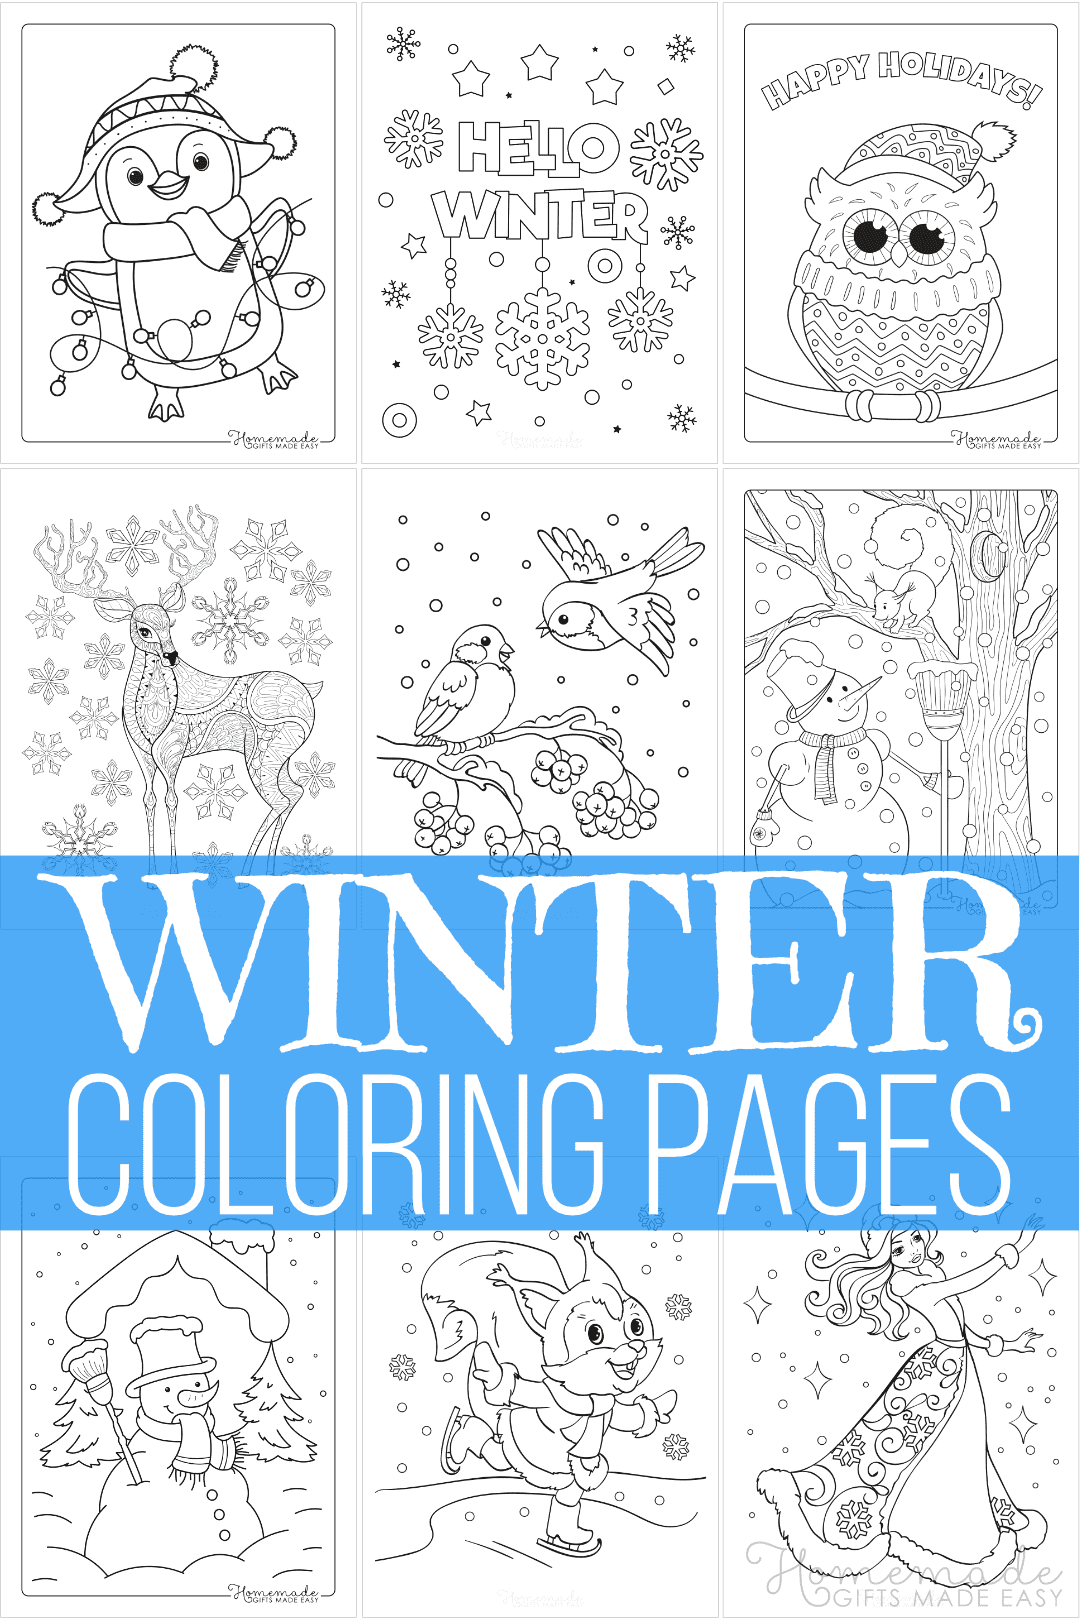 10 Best Winter Coloring Pages  Free Printable Downloads